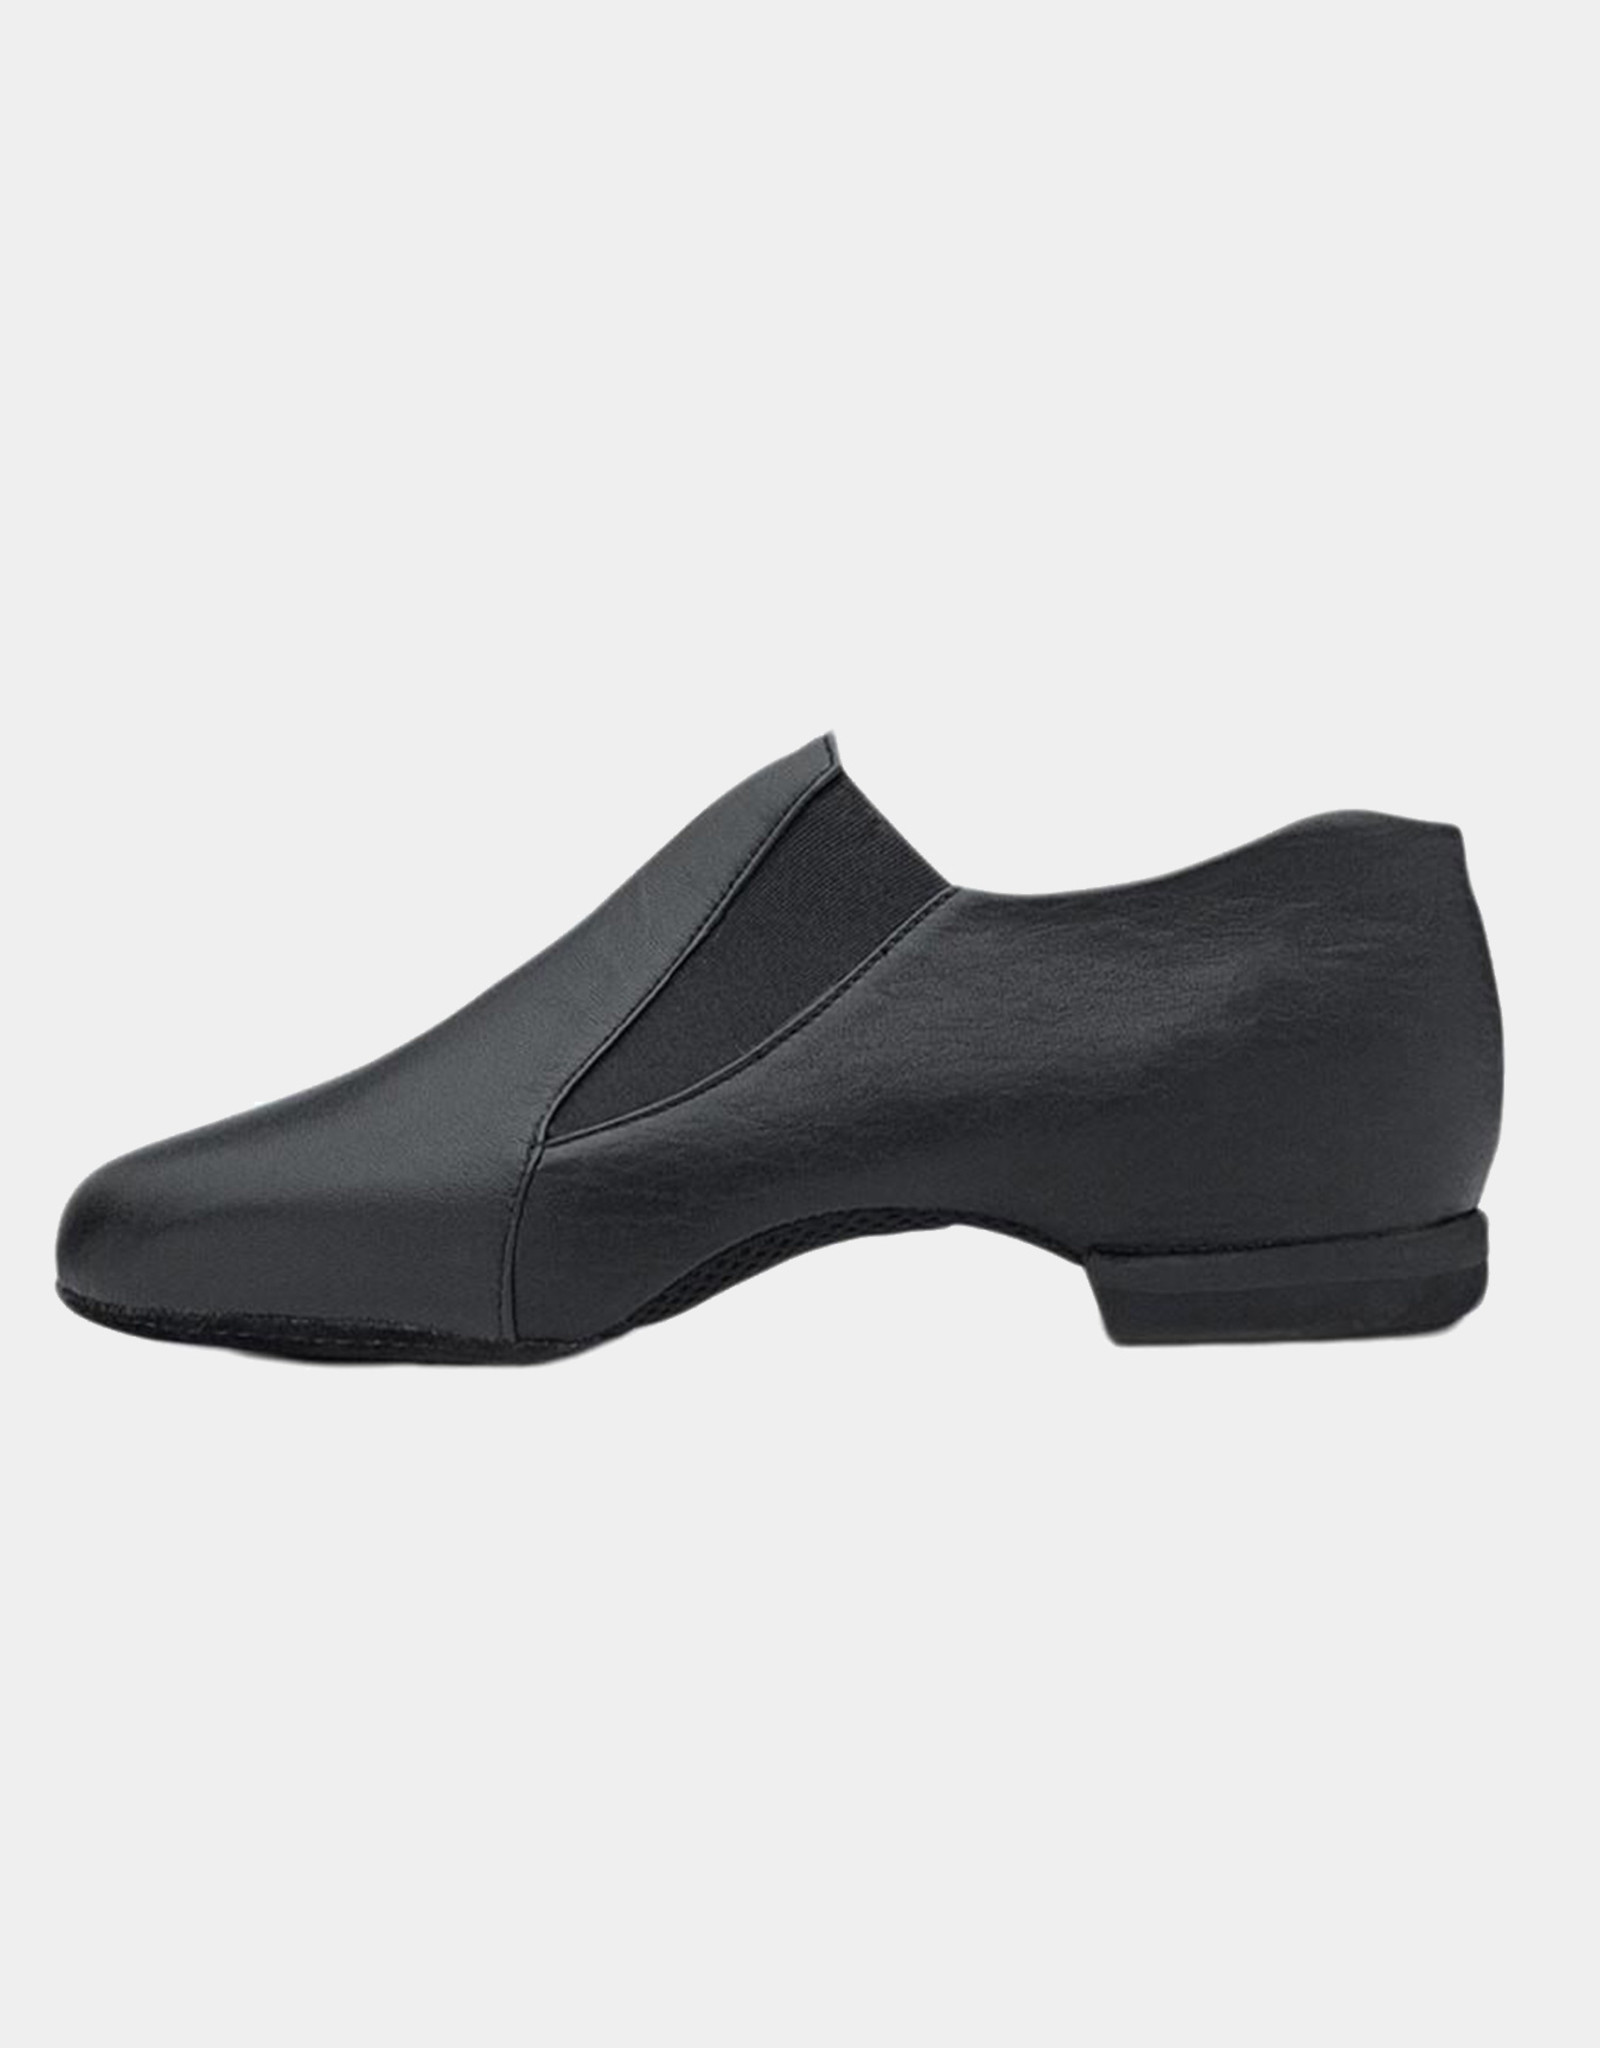 BLOCH ENDURO TECH BOOT SLIP ON LEATHER JAZZ SHOES (SO480L)